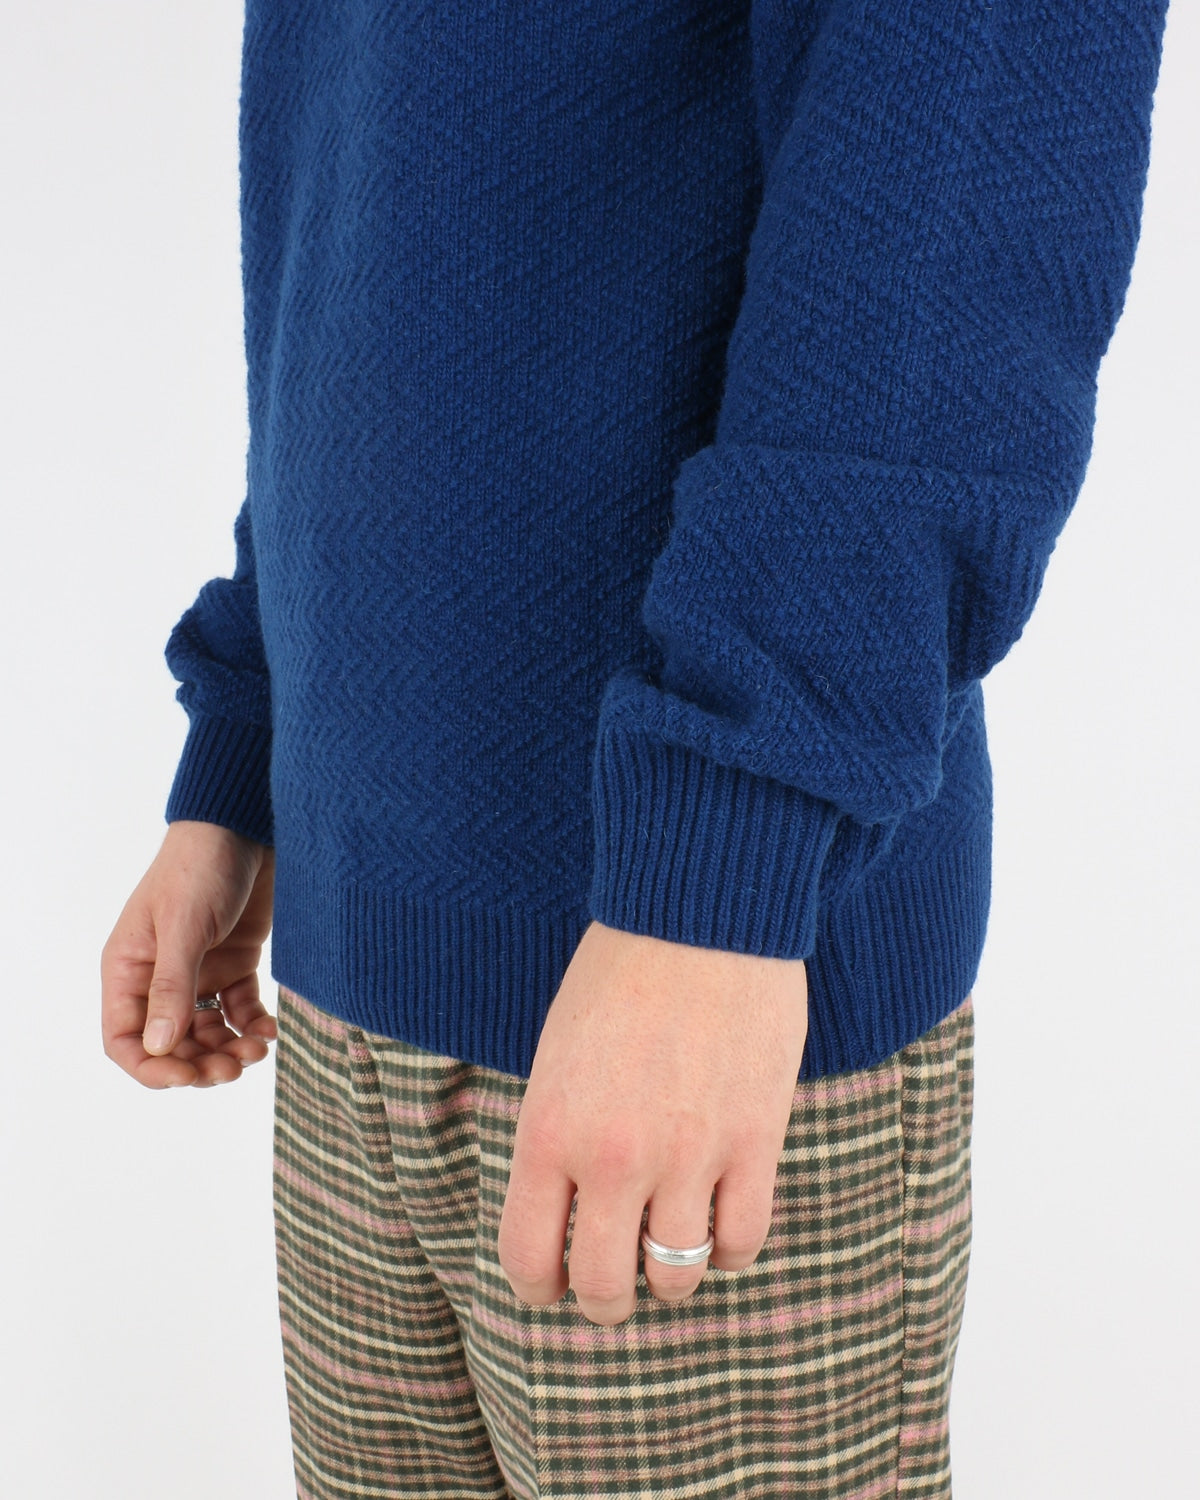 soulland_cassidy herringbone sweater_blue_3_4